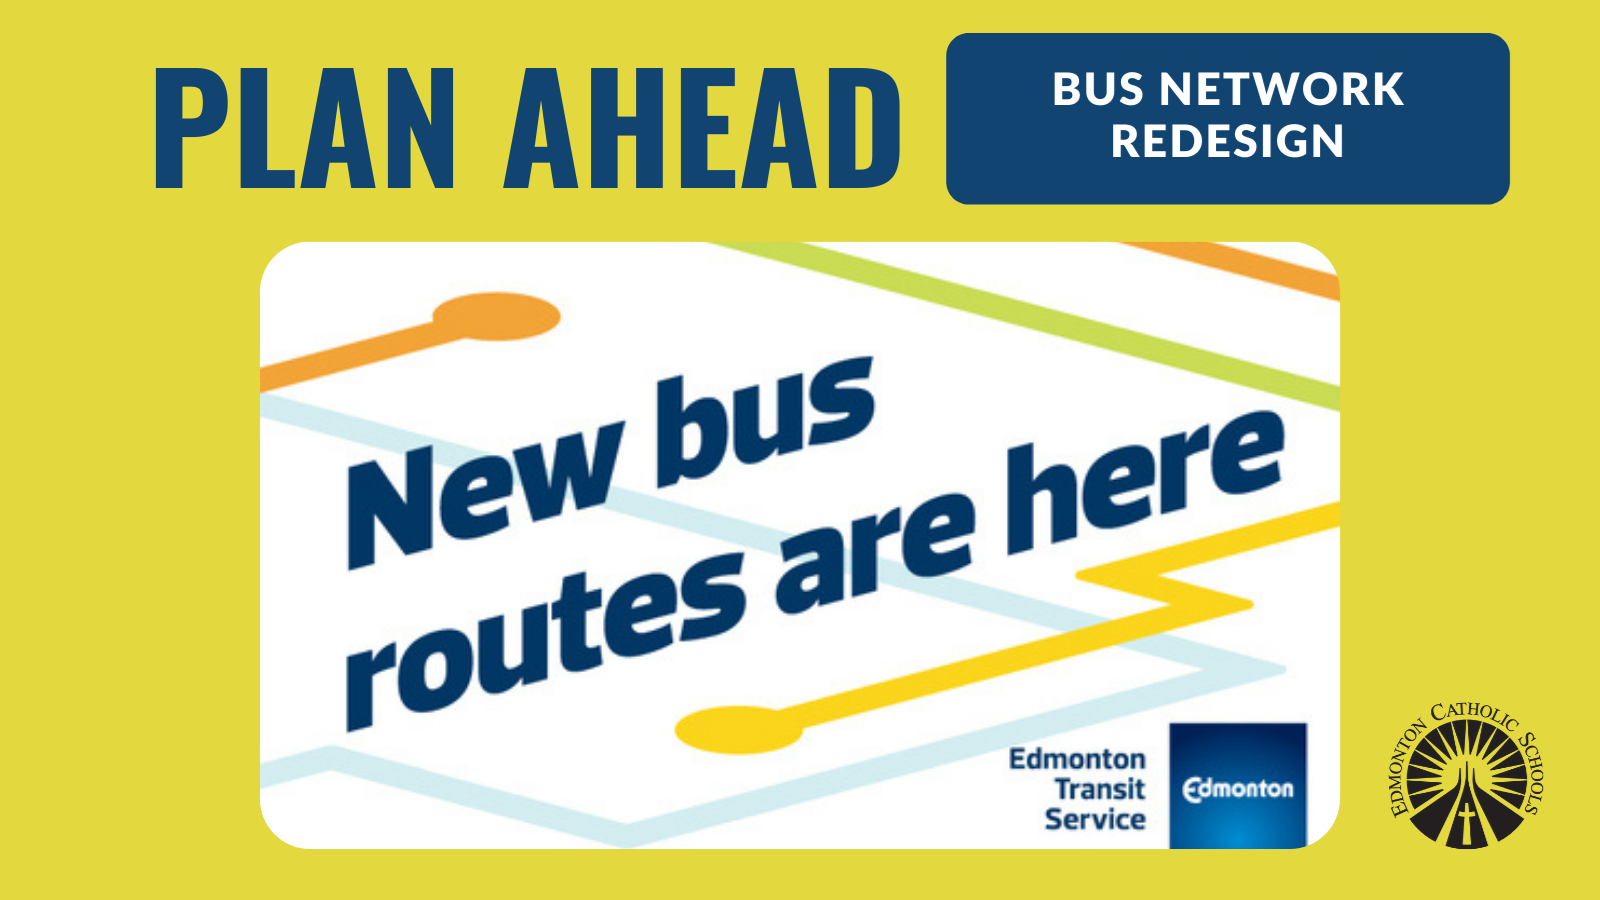 Twitter Bus Network Redesign - New Bus Routes Are Here .png